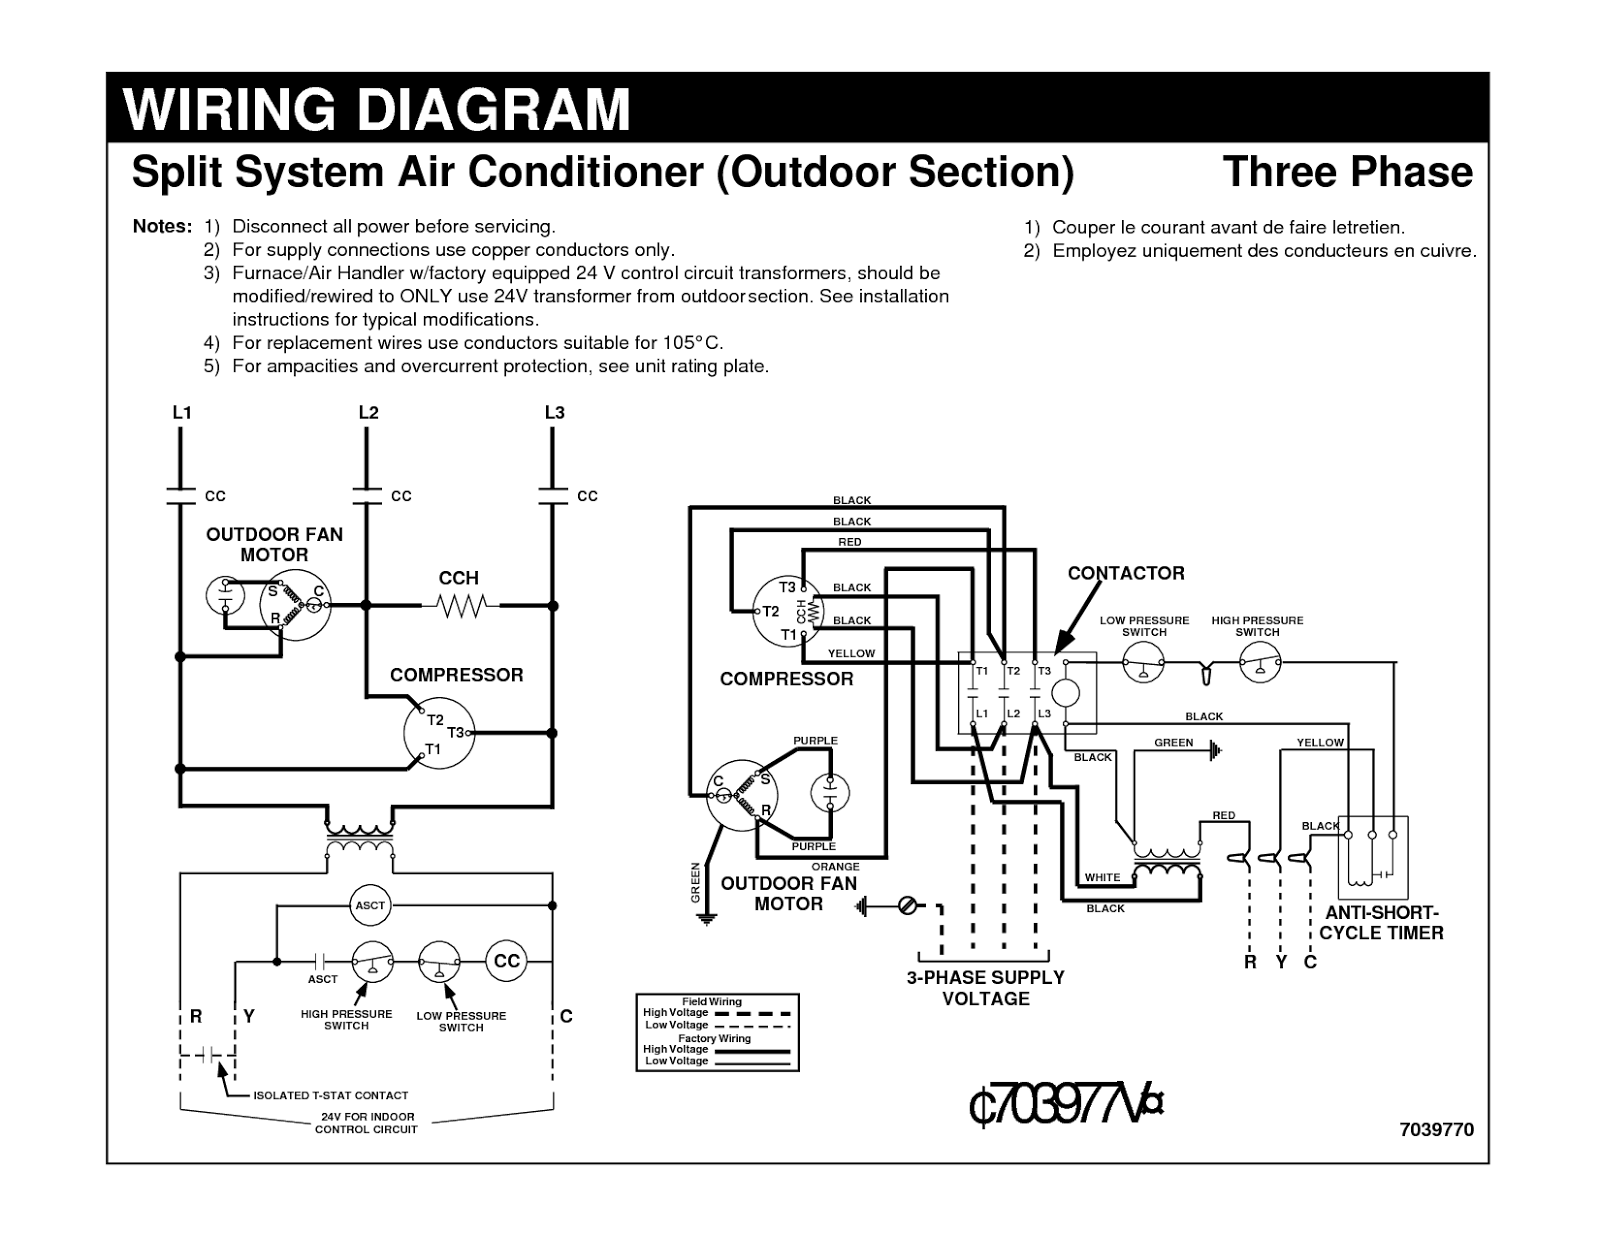 wiring+diagram+in+the+user+manual electrical wiring diagrams for air conditioning systems part one House AC Wiring Diagram at crackthecode.co